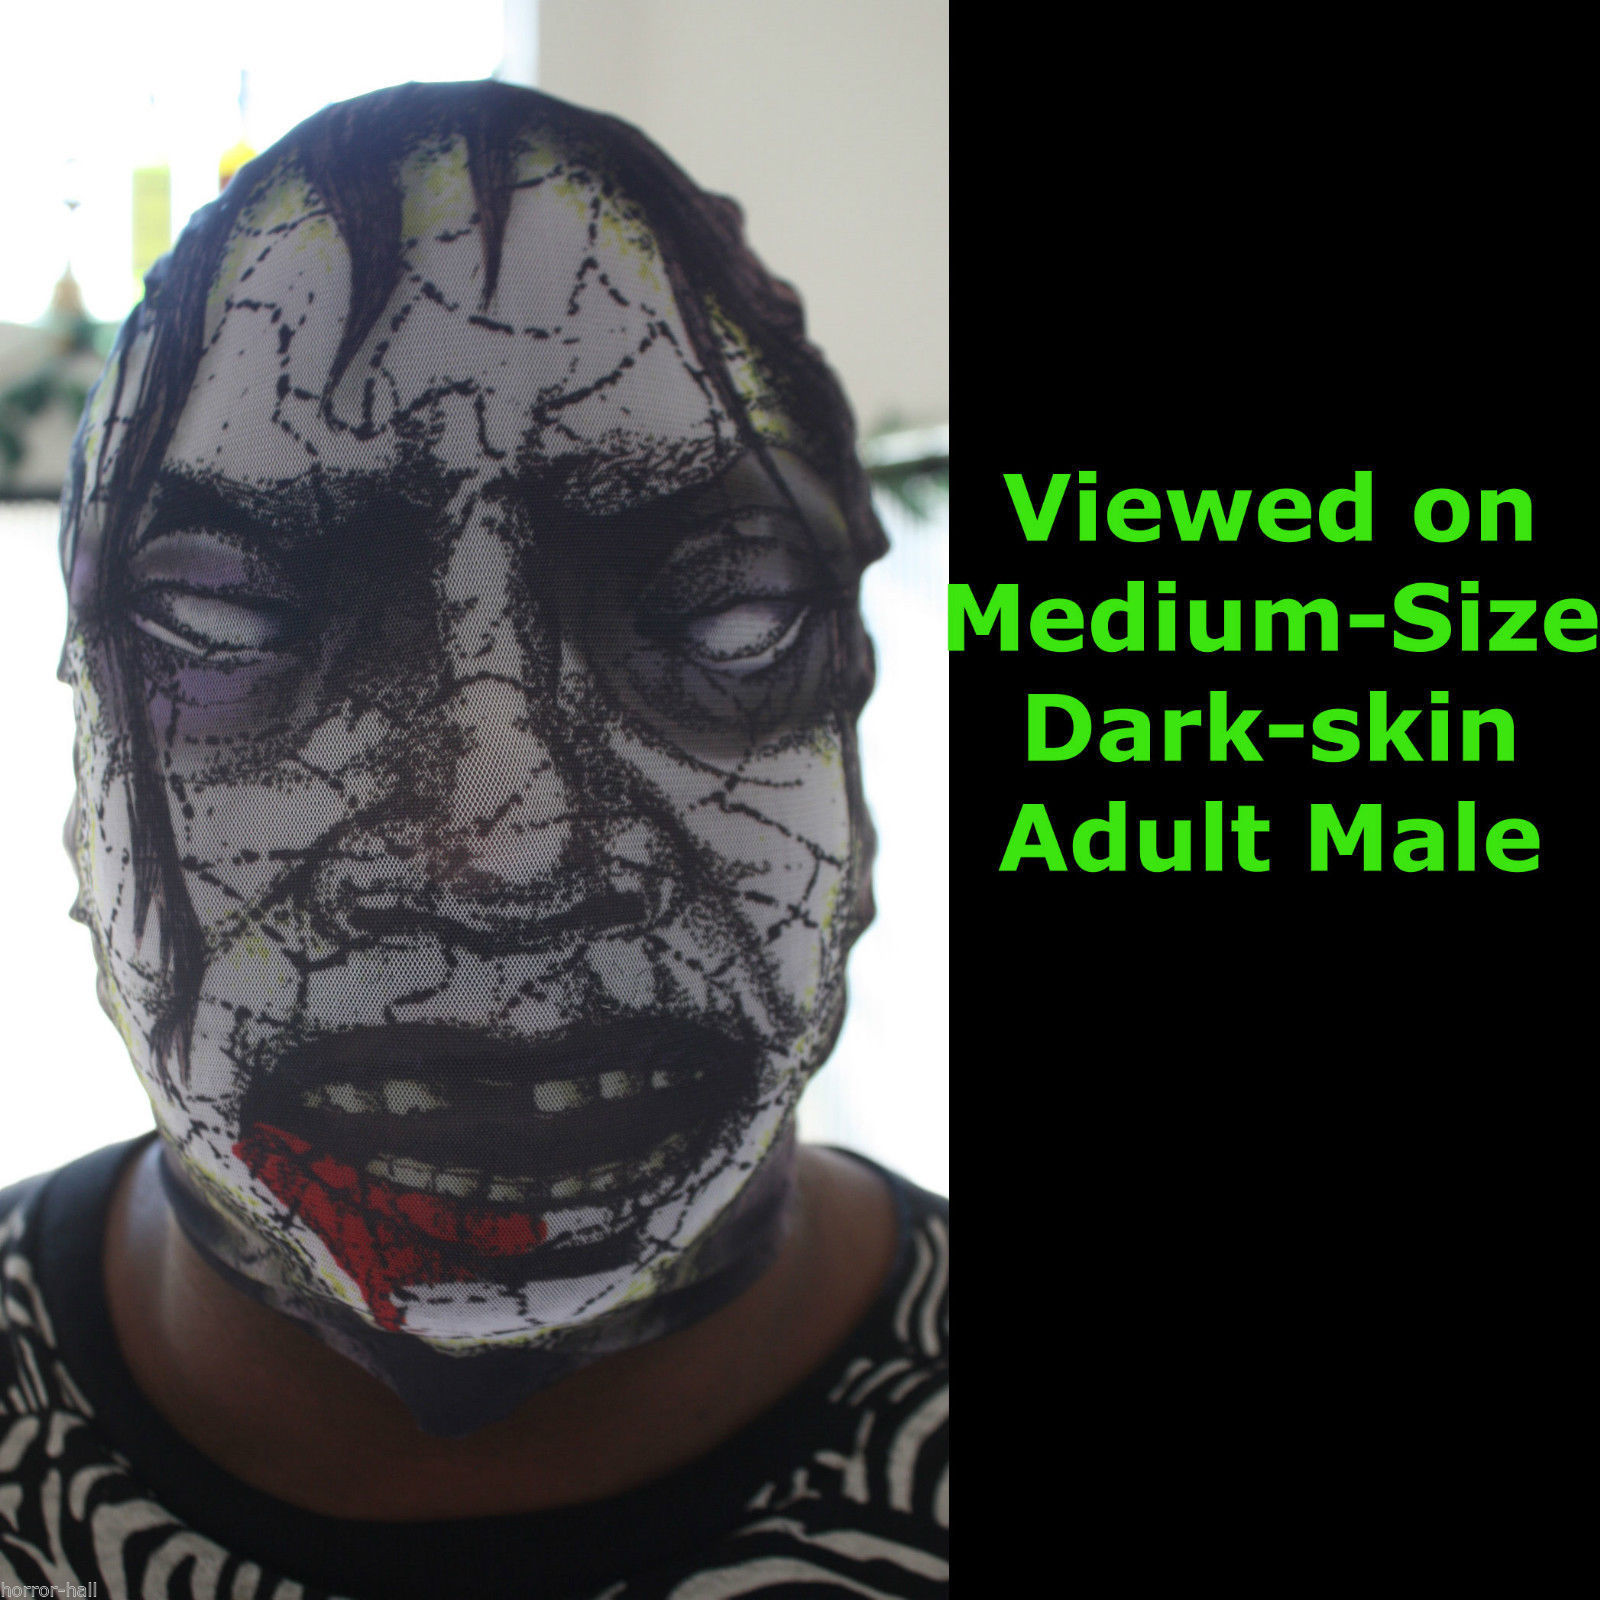 Full Head Zentai Morph Stretch Zombie Mask and 31 similar items